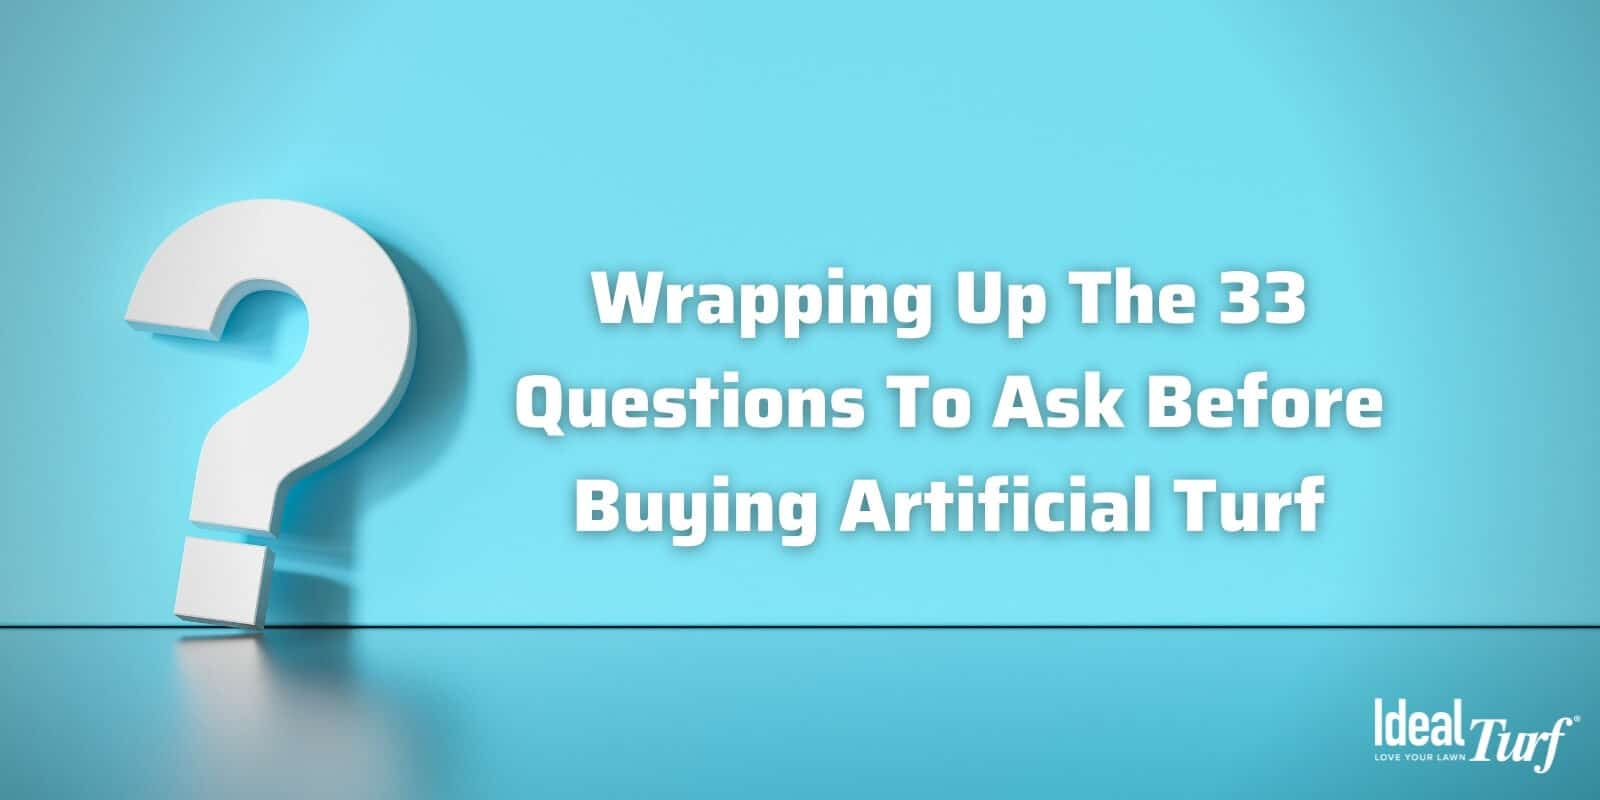 34. Wrapping up Questions Before Buying Turf